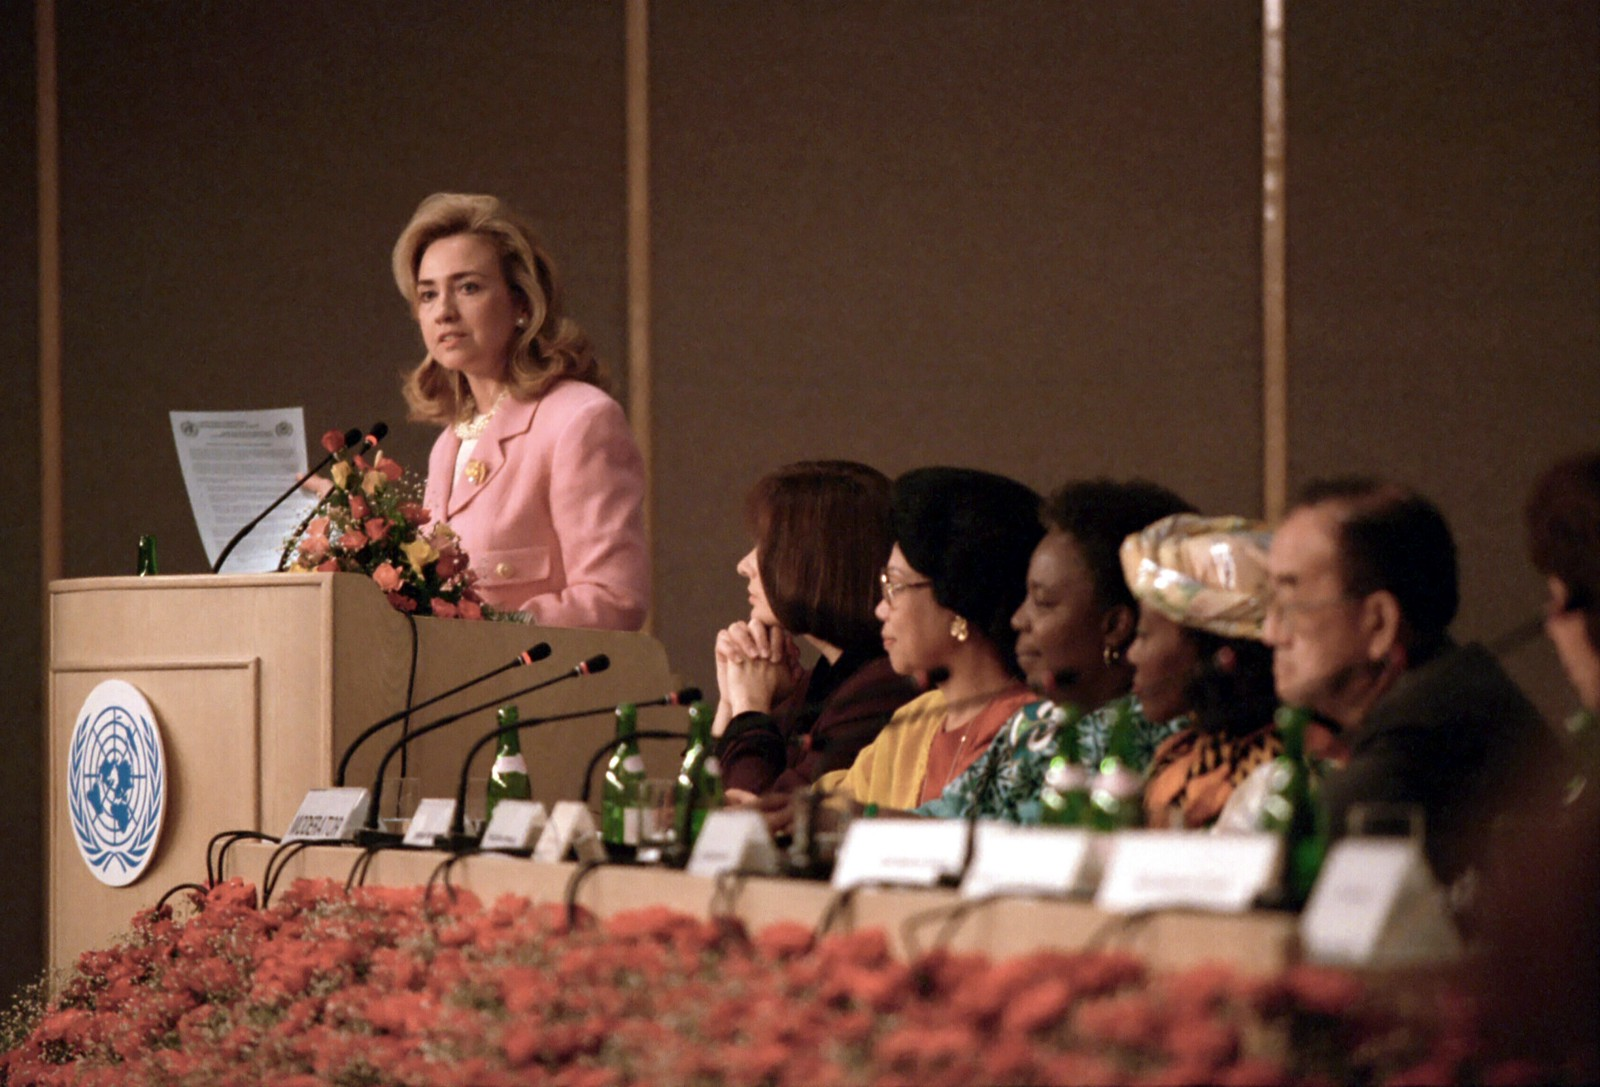 Hillary Rodham Clinton's Remarks: 1995 U.N. 4th World Conference on Women